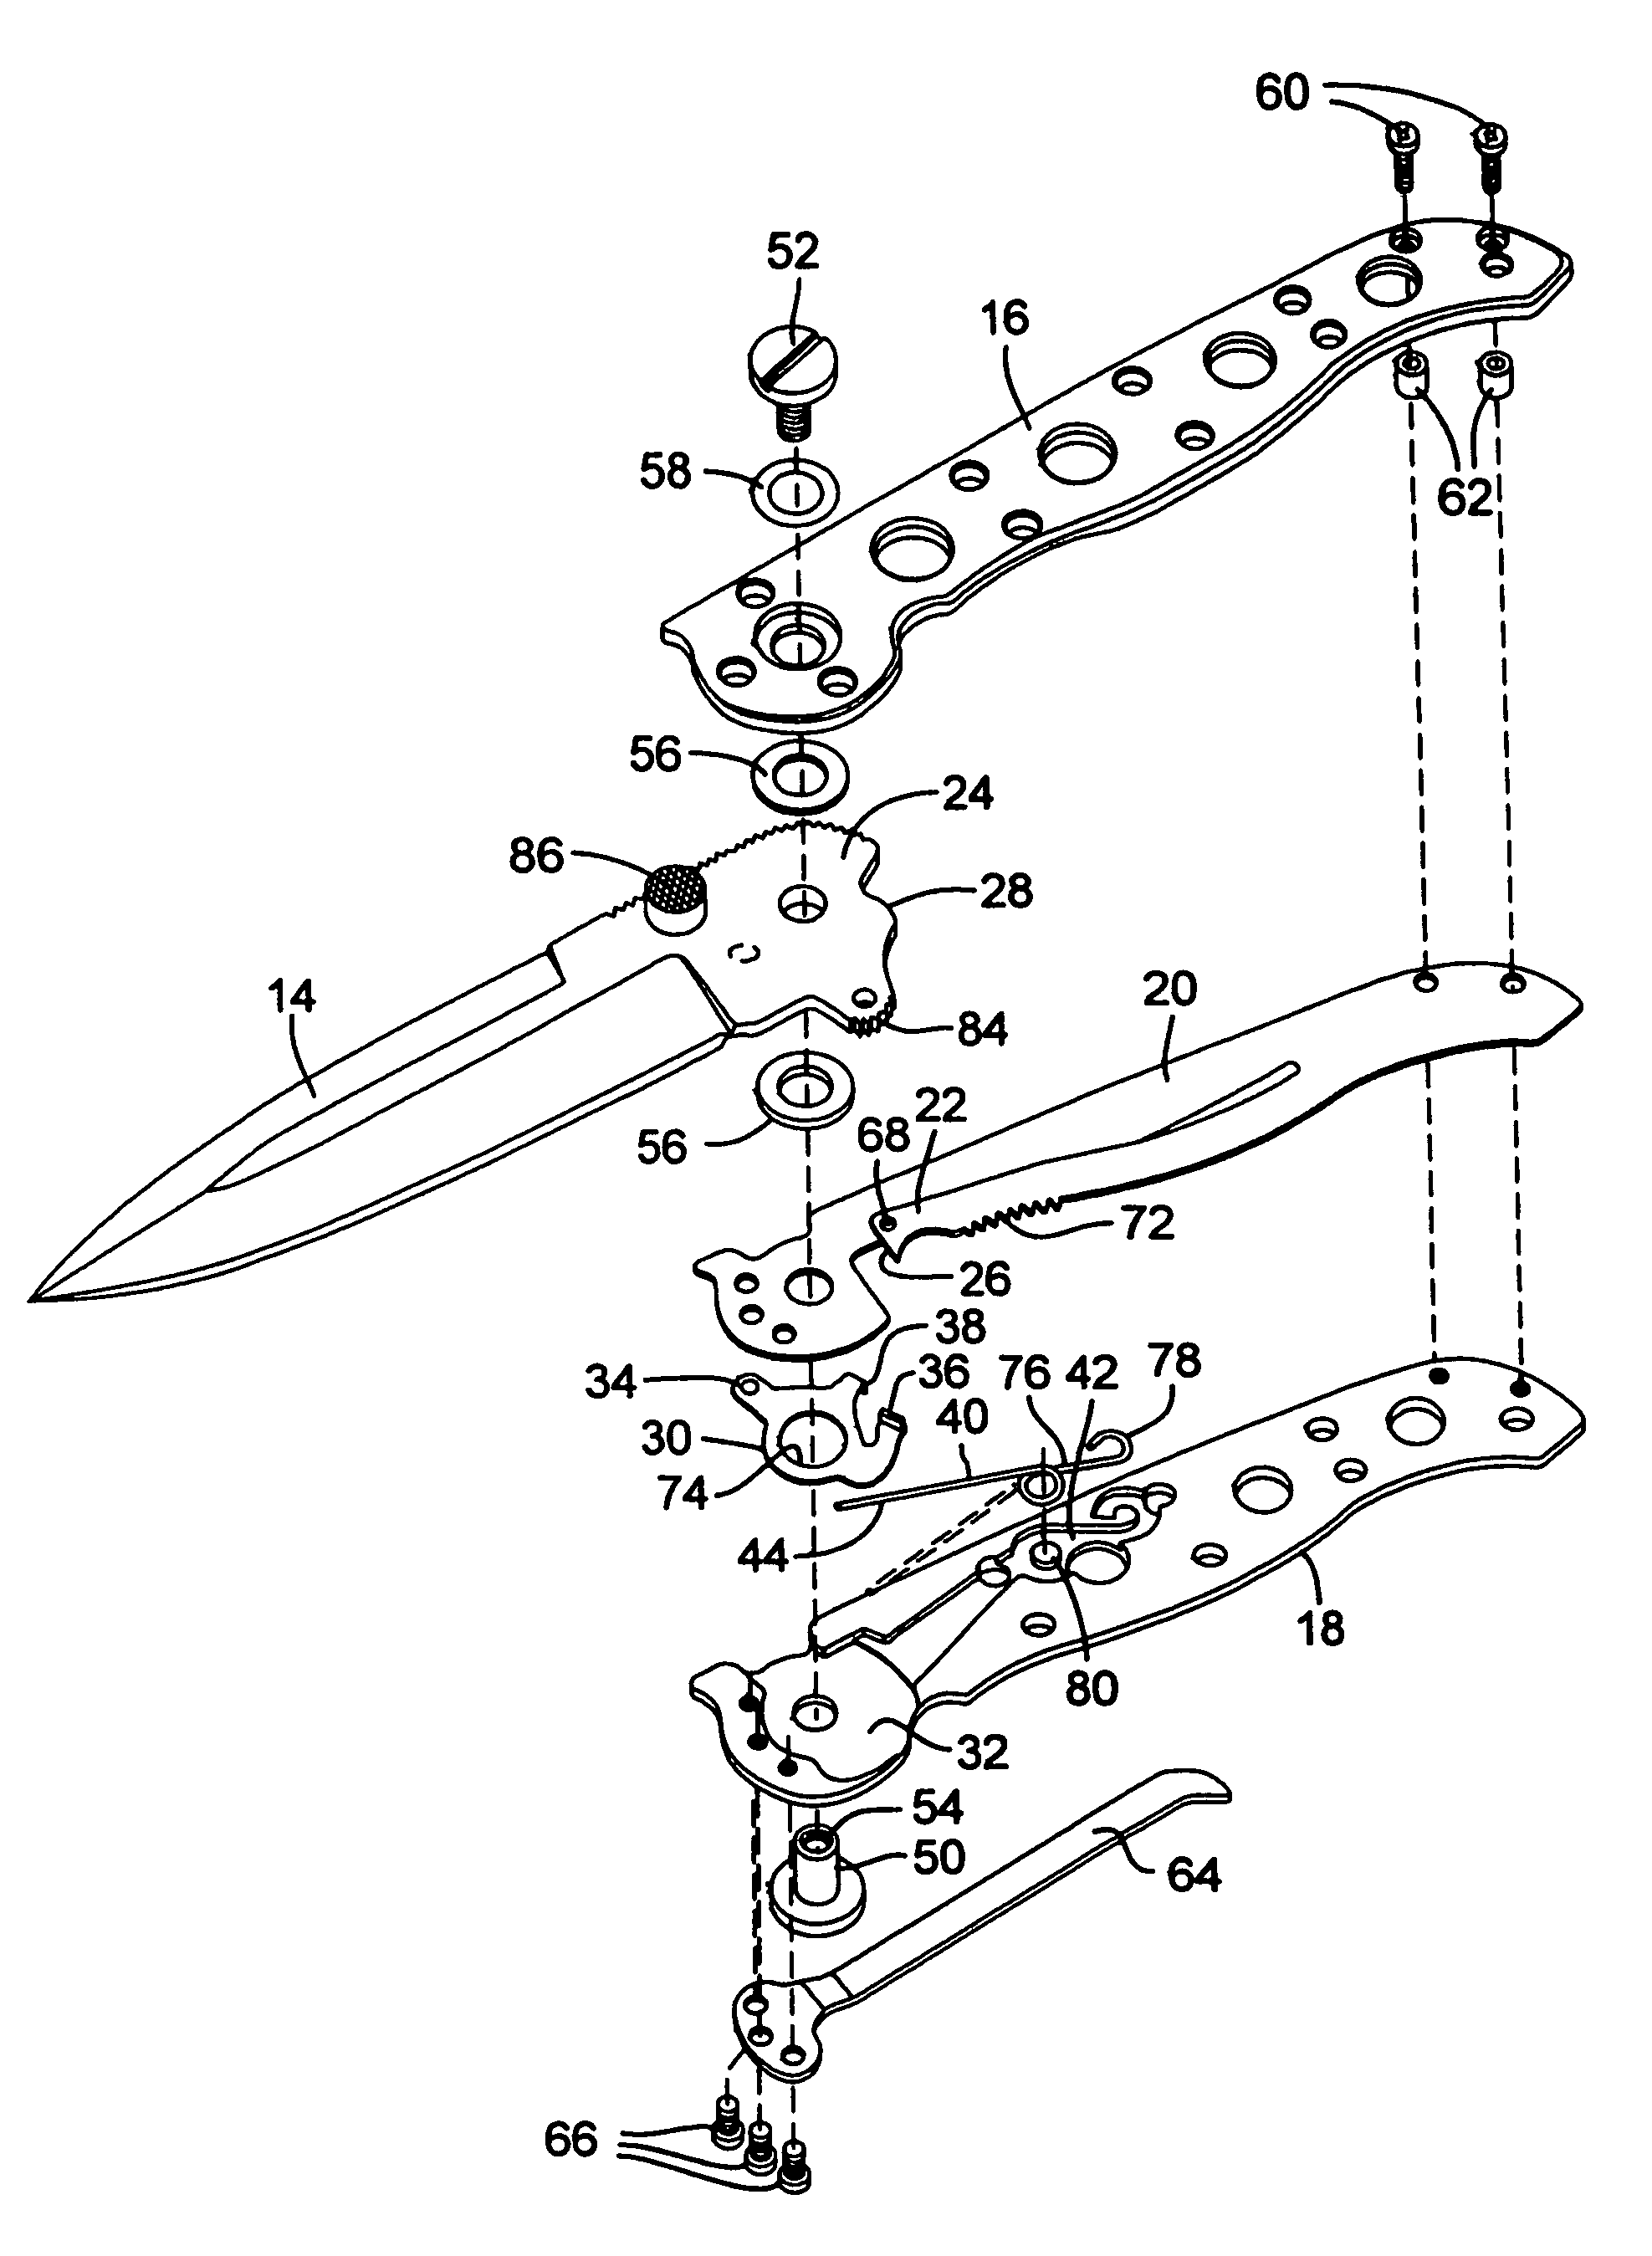 parts of a pocket knife diagram pull switch wiring uk schematic folding elsavadorla